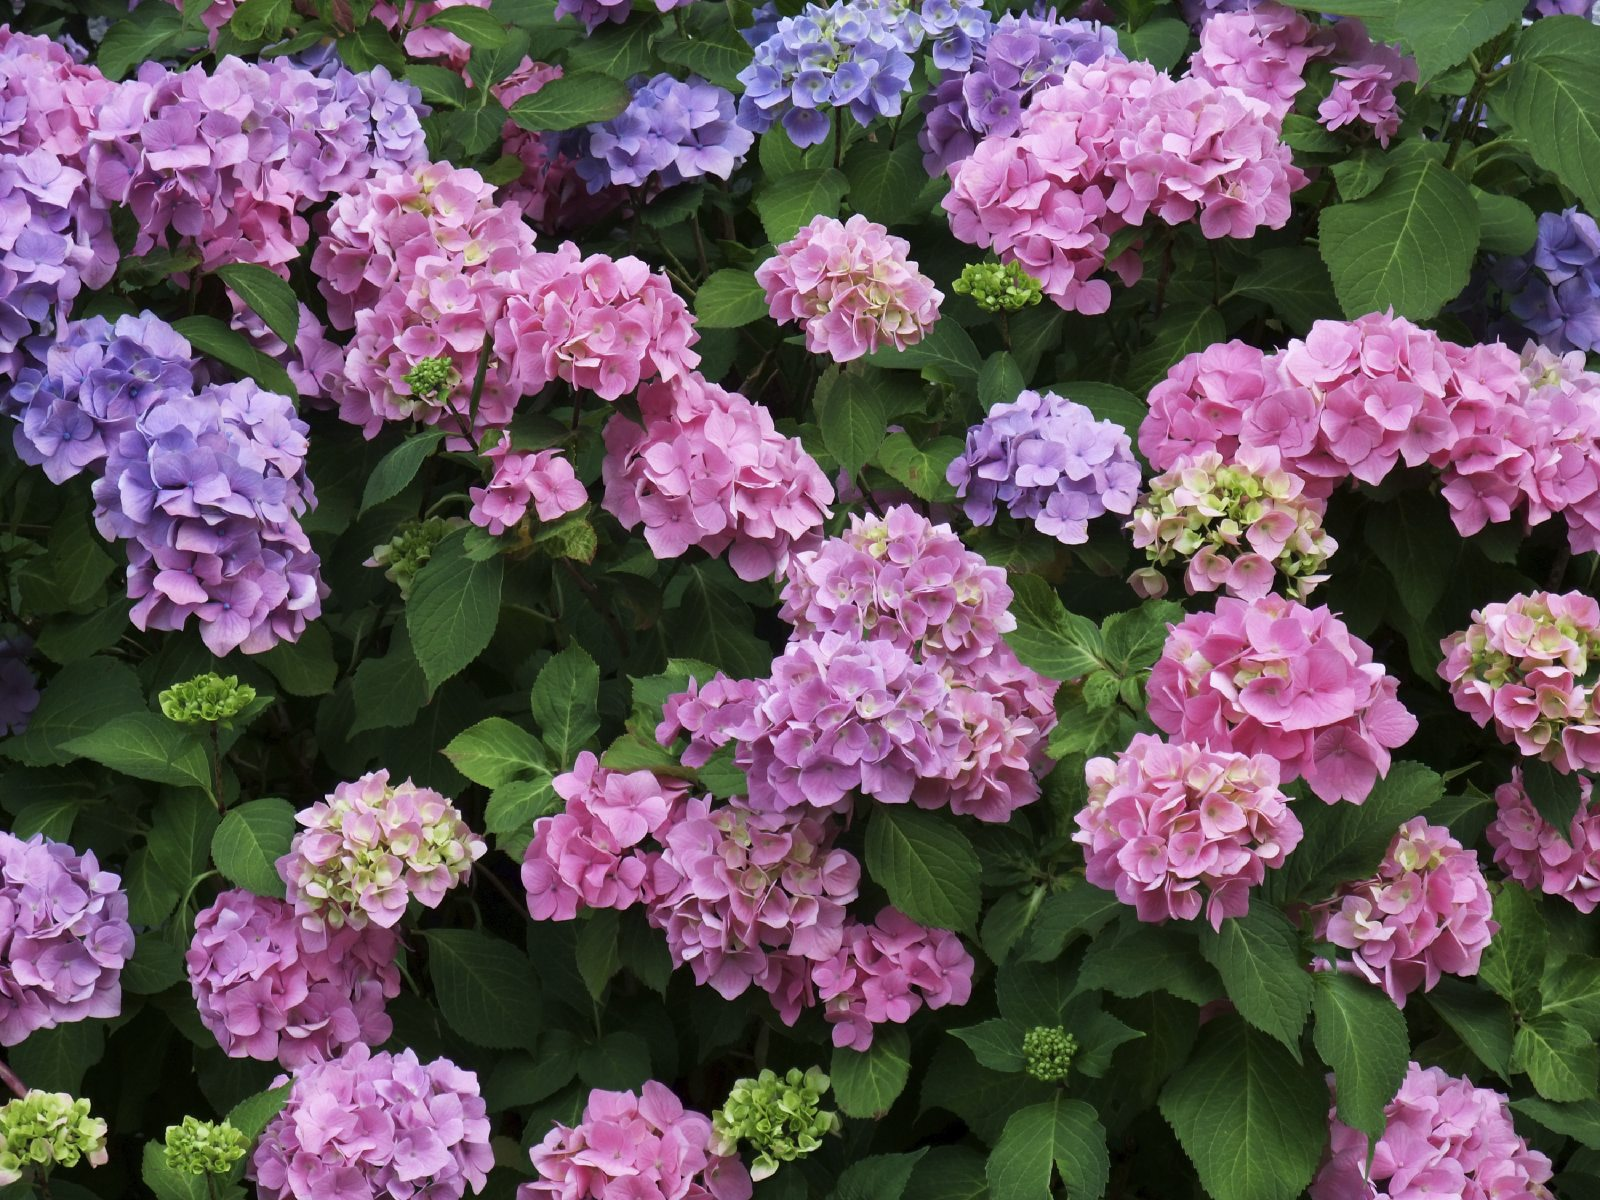 How to grow and care for hydrangeas - Caring hydrangea garden ...